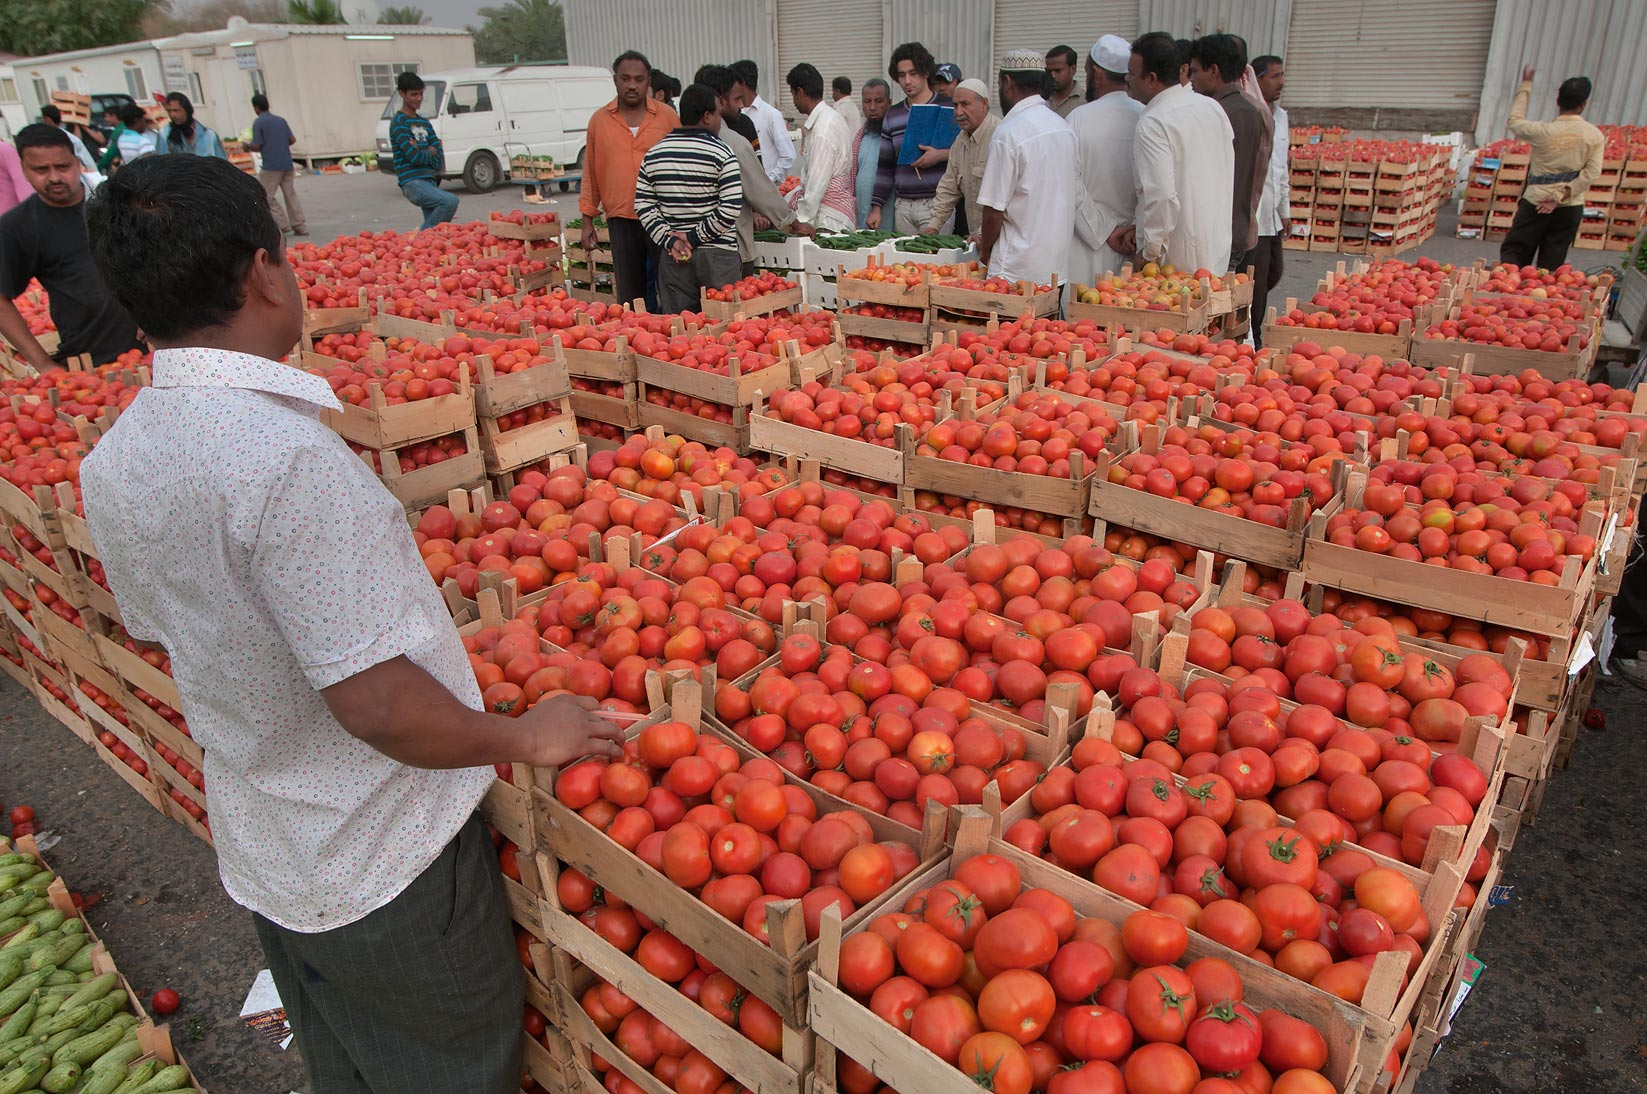 Shoppers near boxes with tomato in Wholesale Vegetable Market. Doha, Qatar